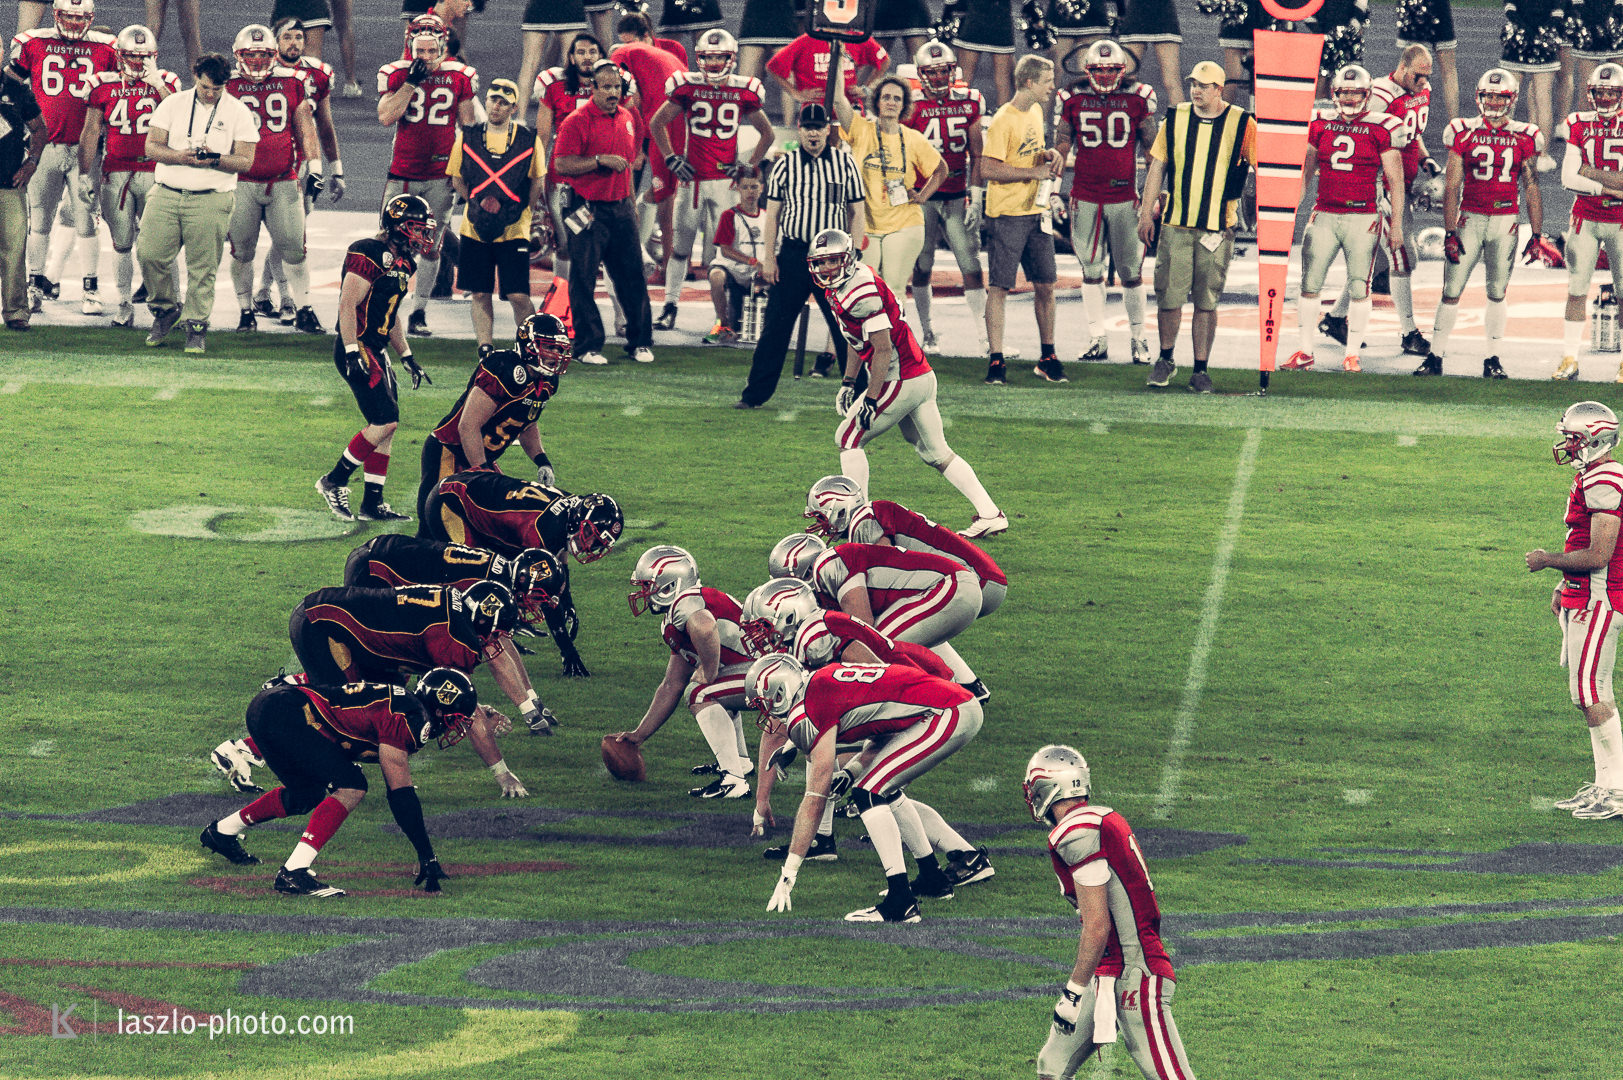 American Football European Championship 2014, Austria vs. Germany.